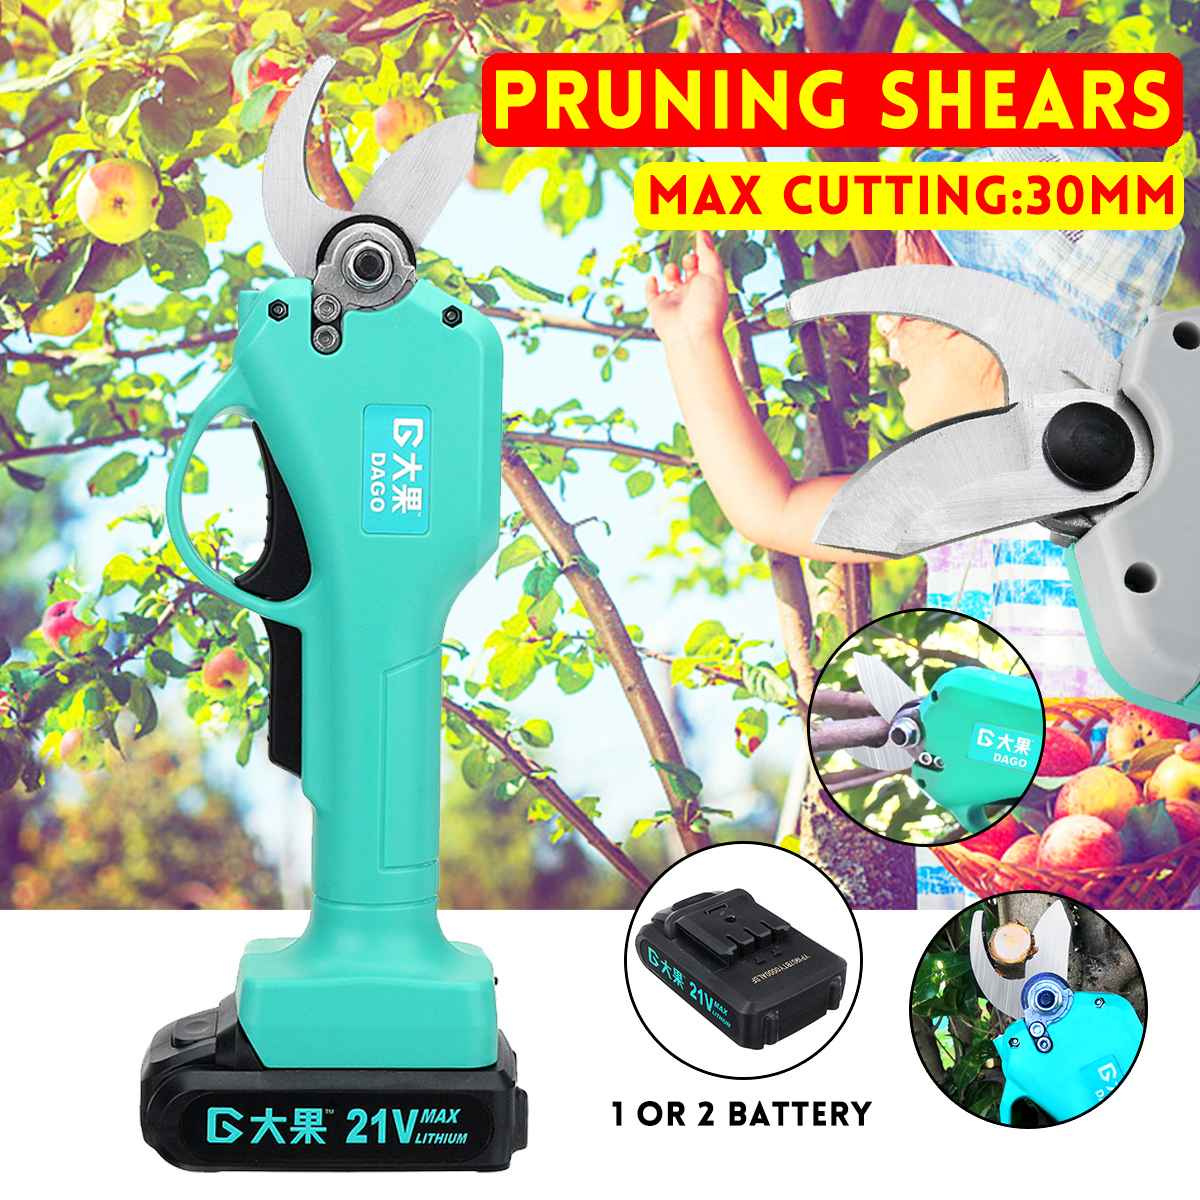 30mm Rechargeable Electric Pruning Scissors Cordless Pruning Shears Garden Pruner Secateur Branch Cutting Tool With 1/ 2 Battery